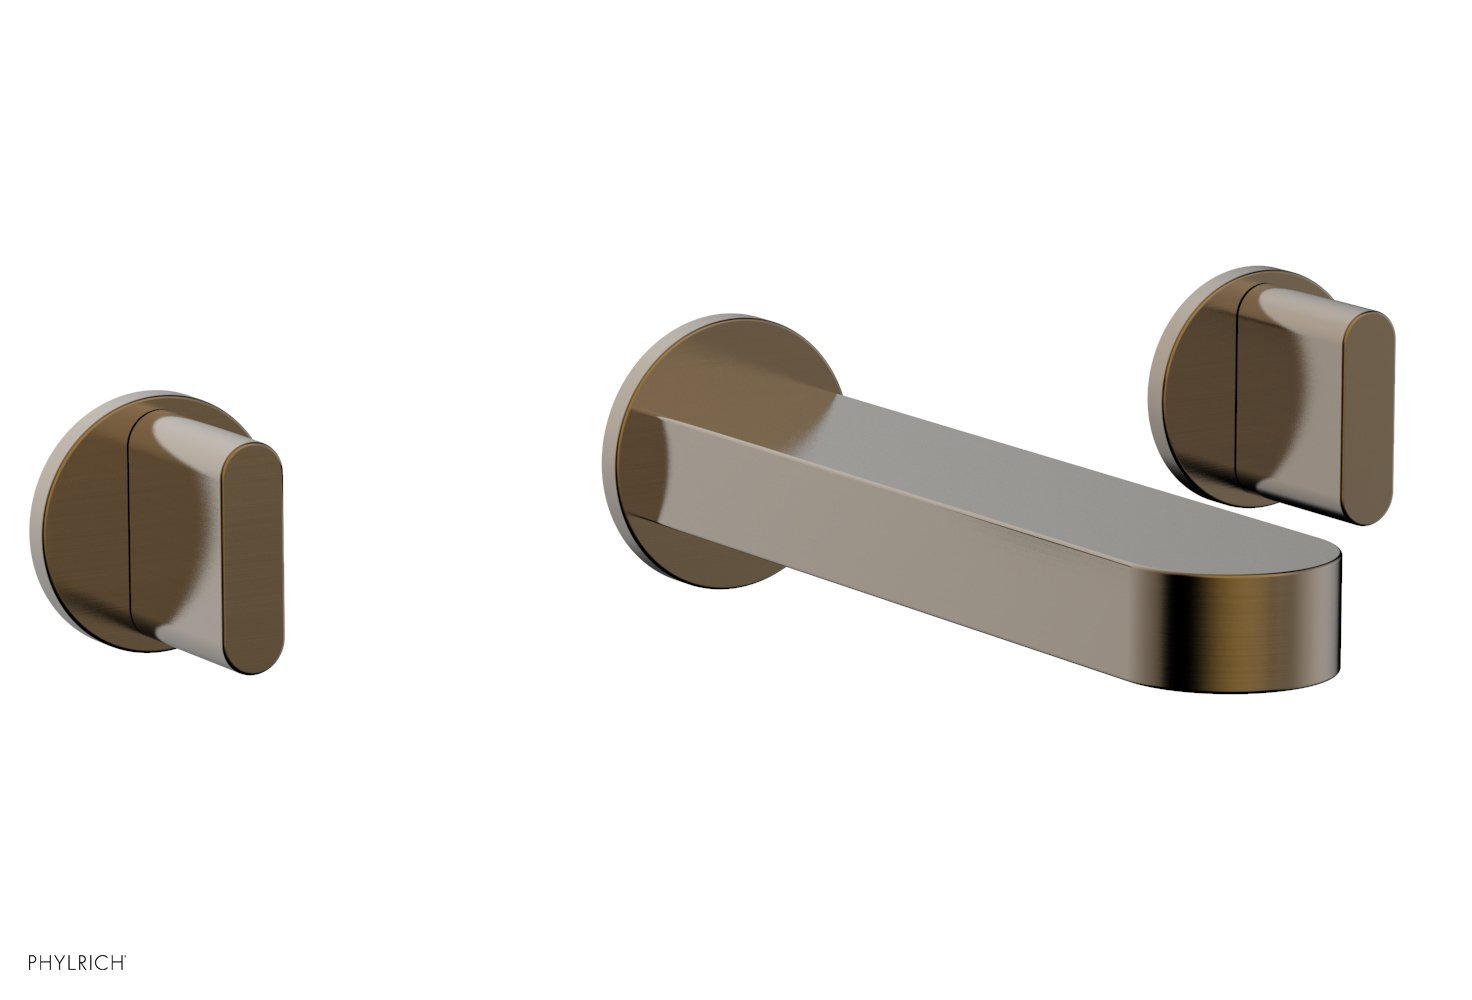 Phylrich 183-56-047 ROND Wall Tub Set - Blade Handles - Antique Brass